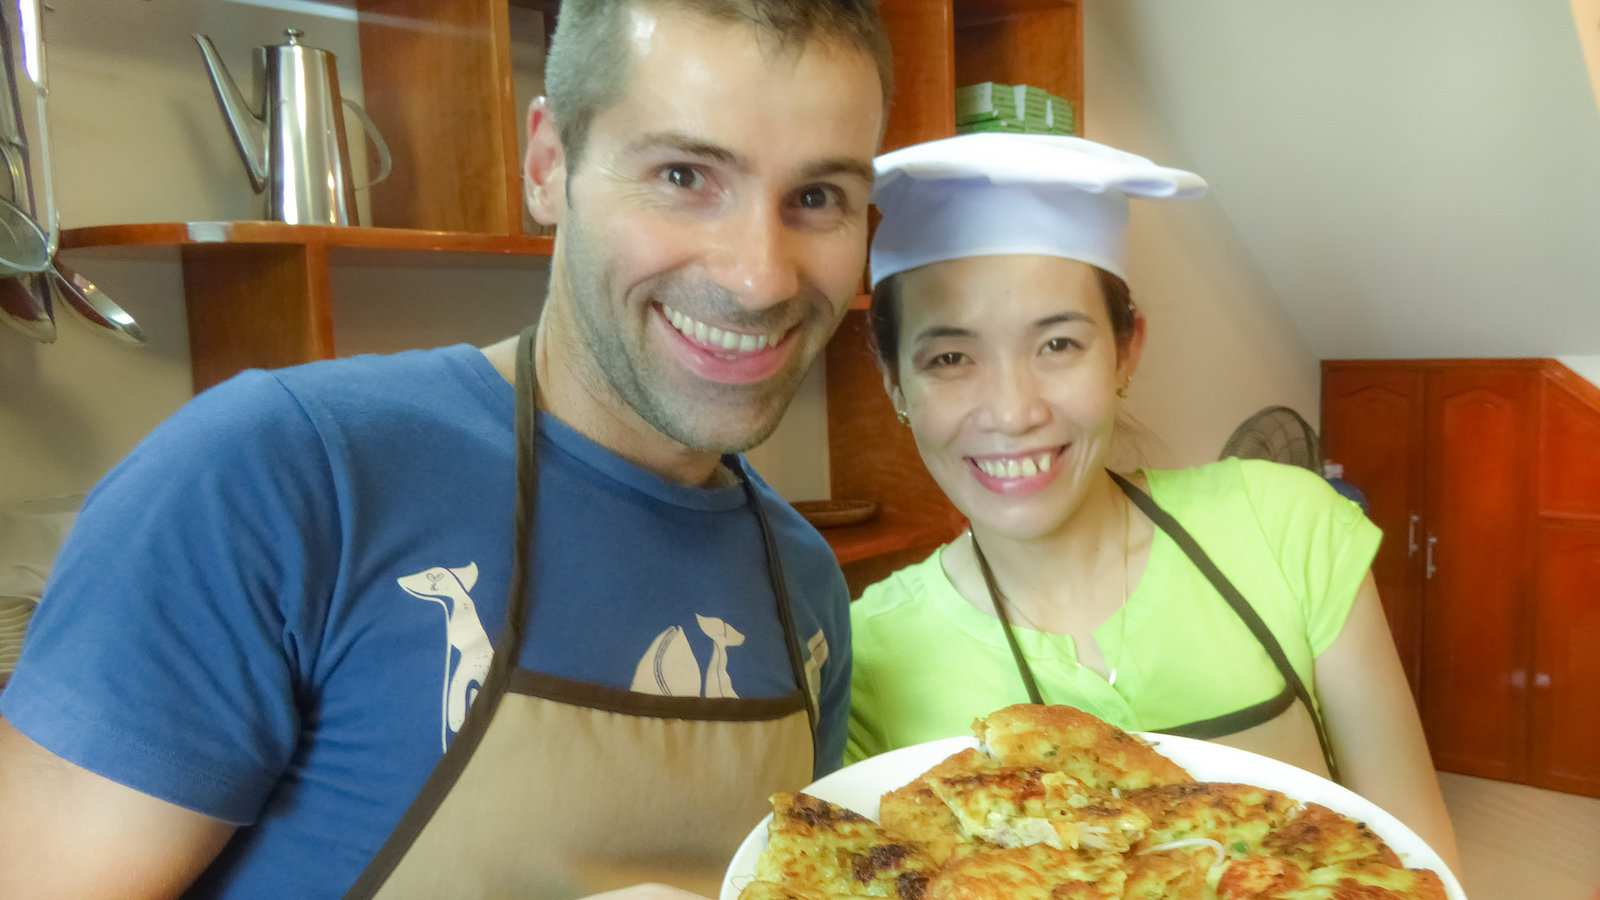 Banh xeo is a delicious traditional Vietnamese savory pancake that we loved!